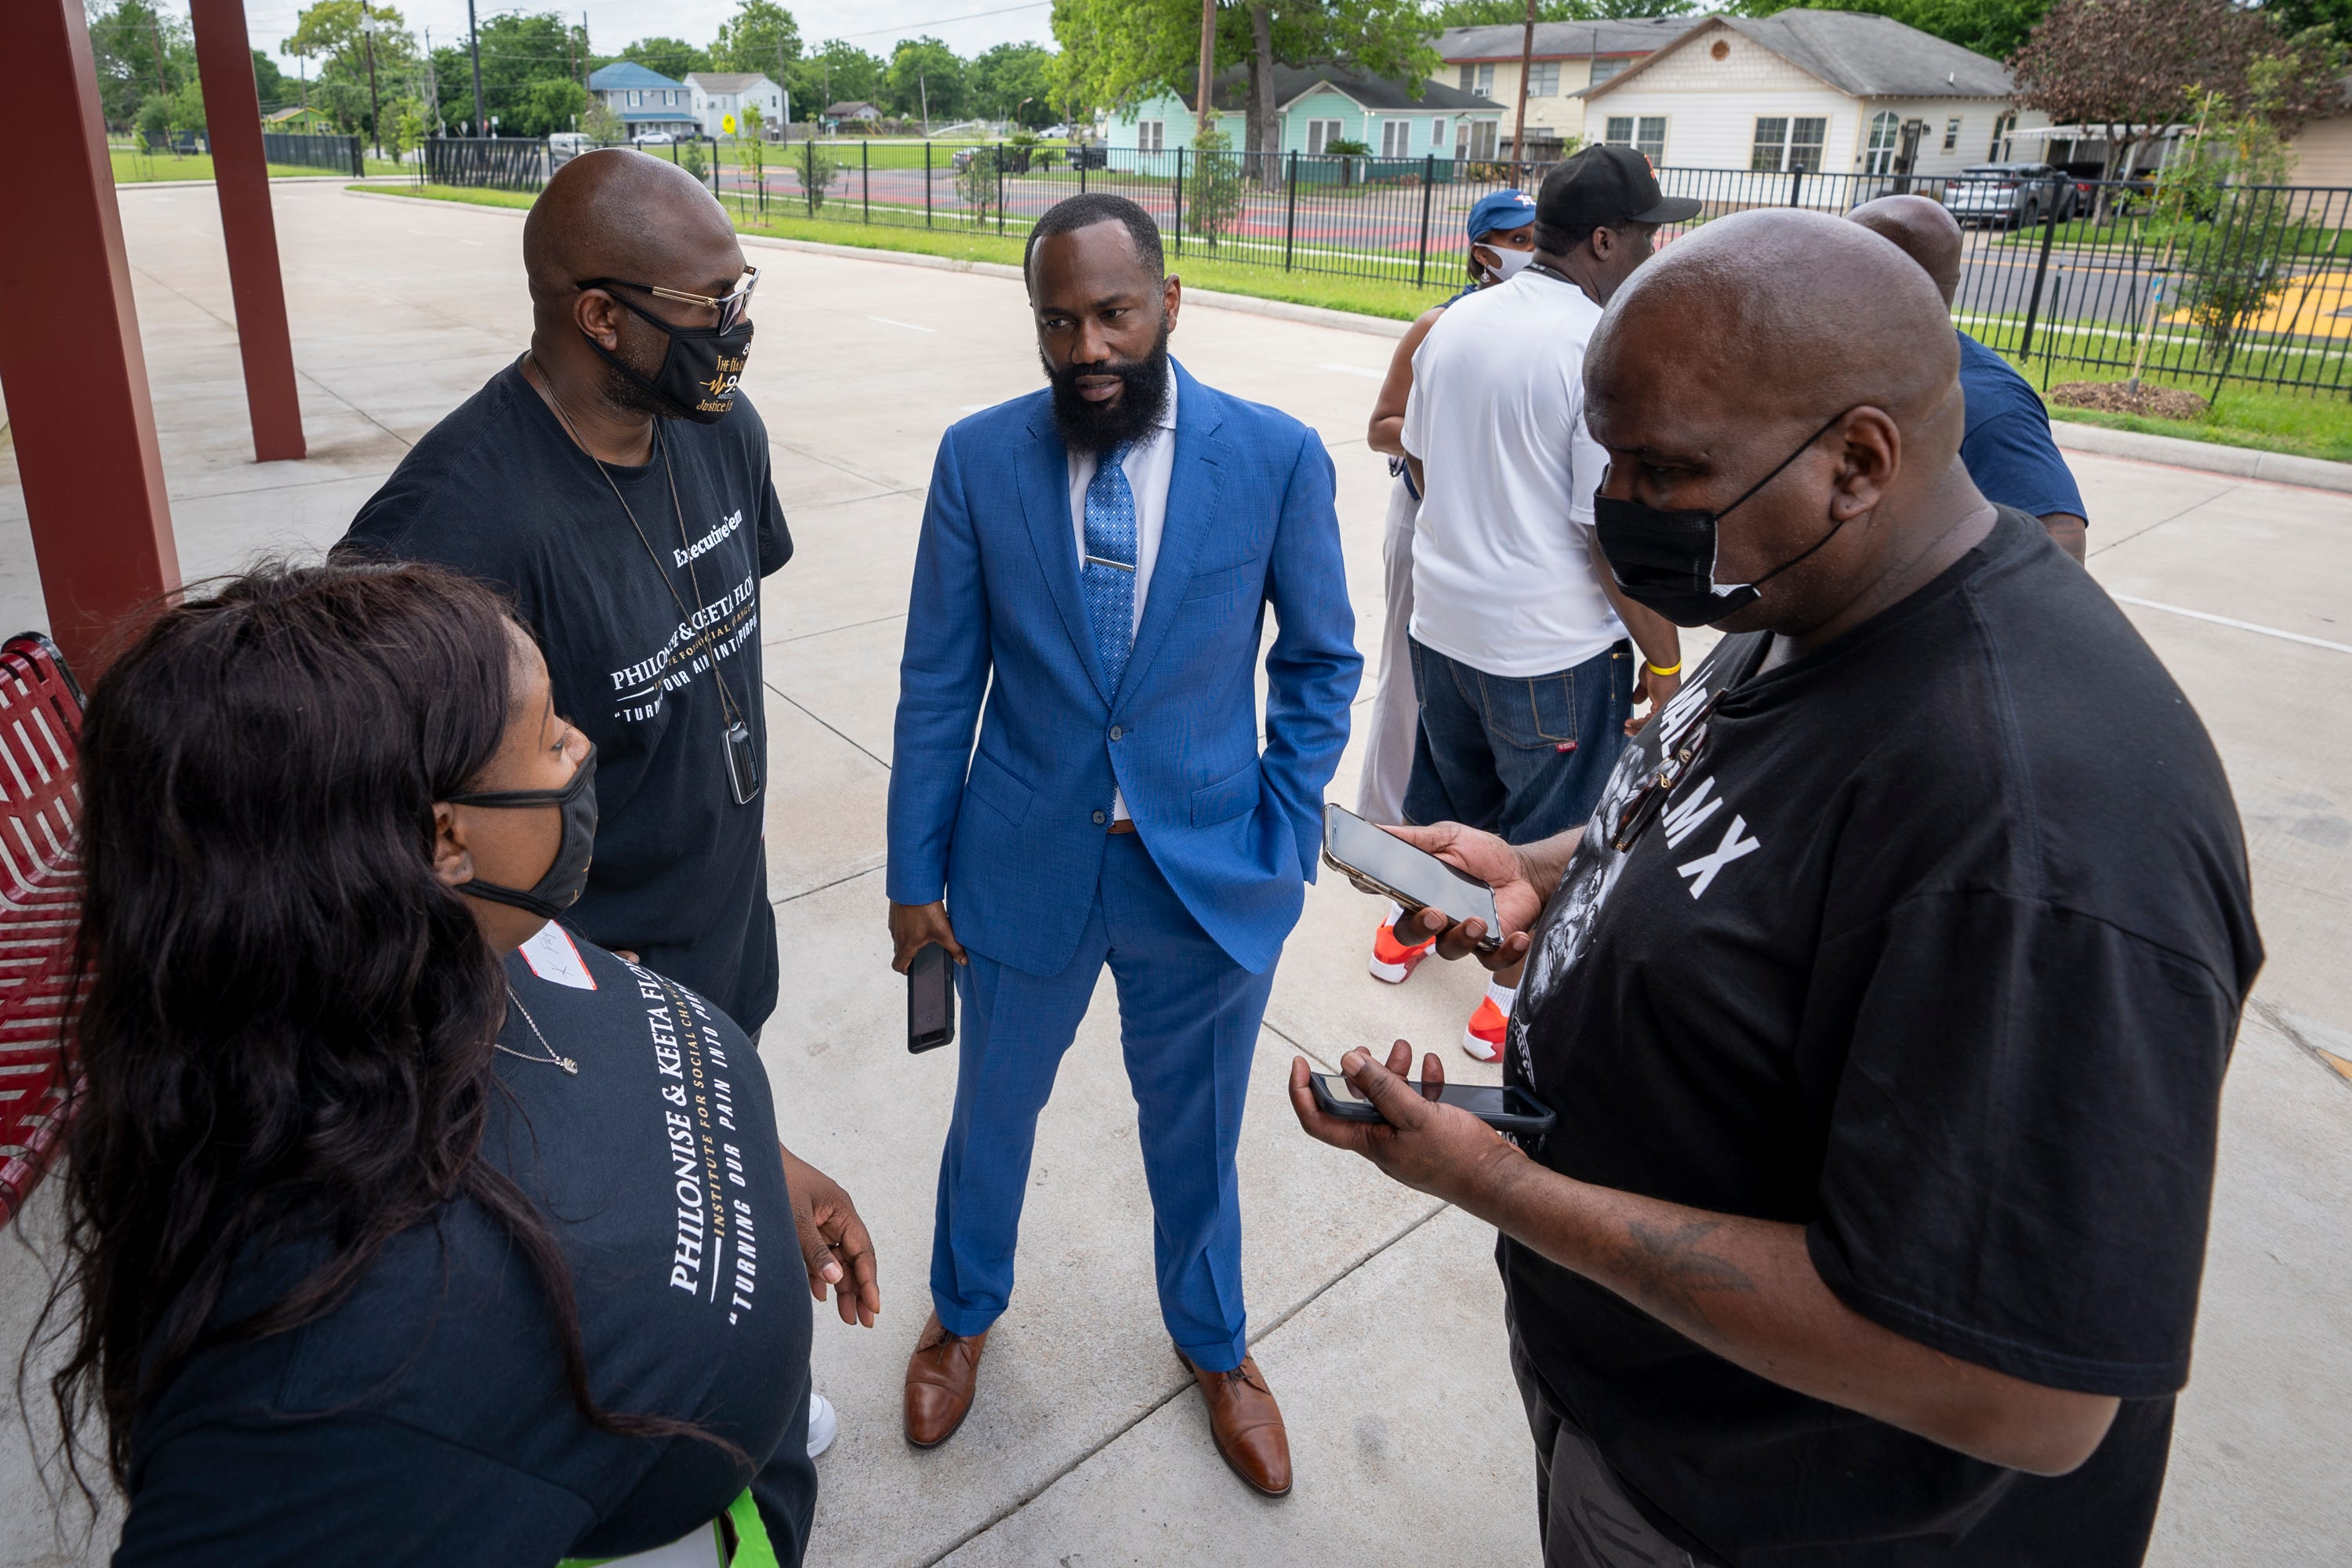 Chris Johnson (center) of Good Hope Missionary Baptist Church speaks with members of George Floyd's family outside Jack Yates High School in the Third Ward of Houston, Texas.